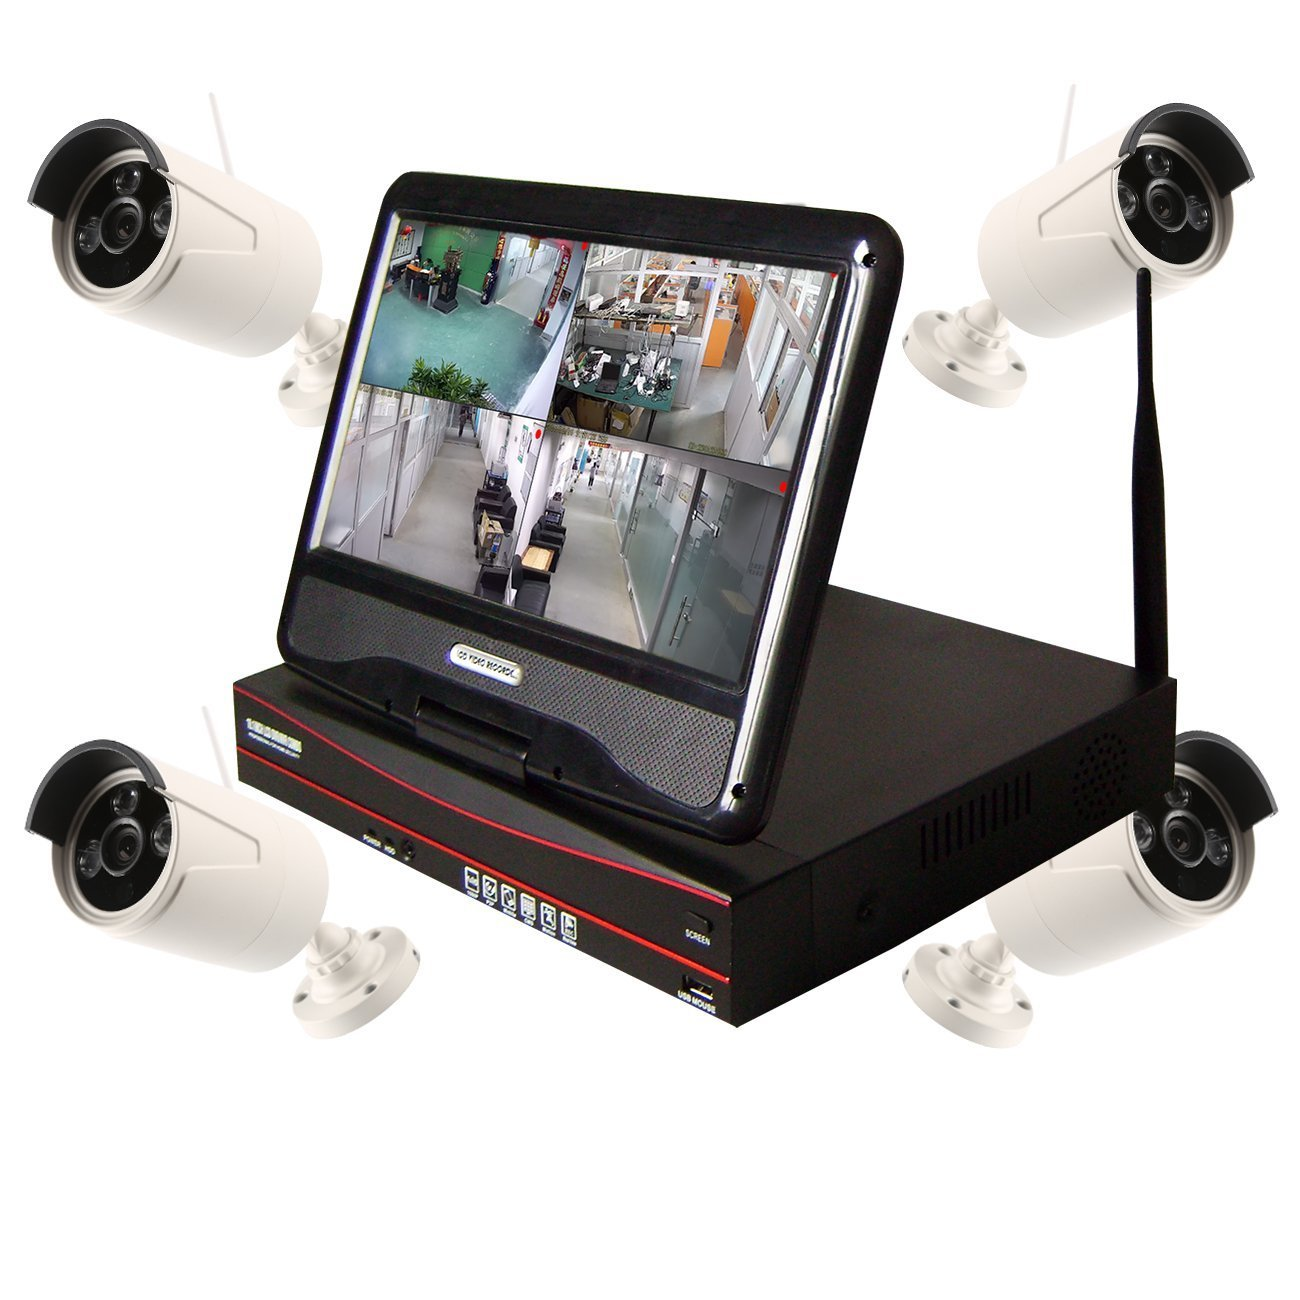 850677be4de Get Quotations · Home Security Camera System with 10